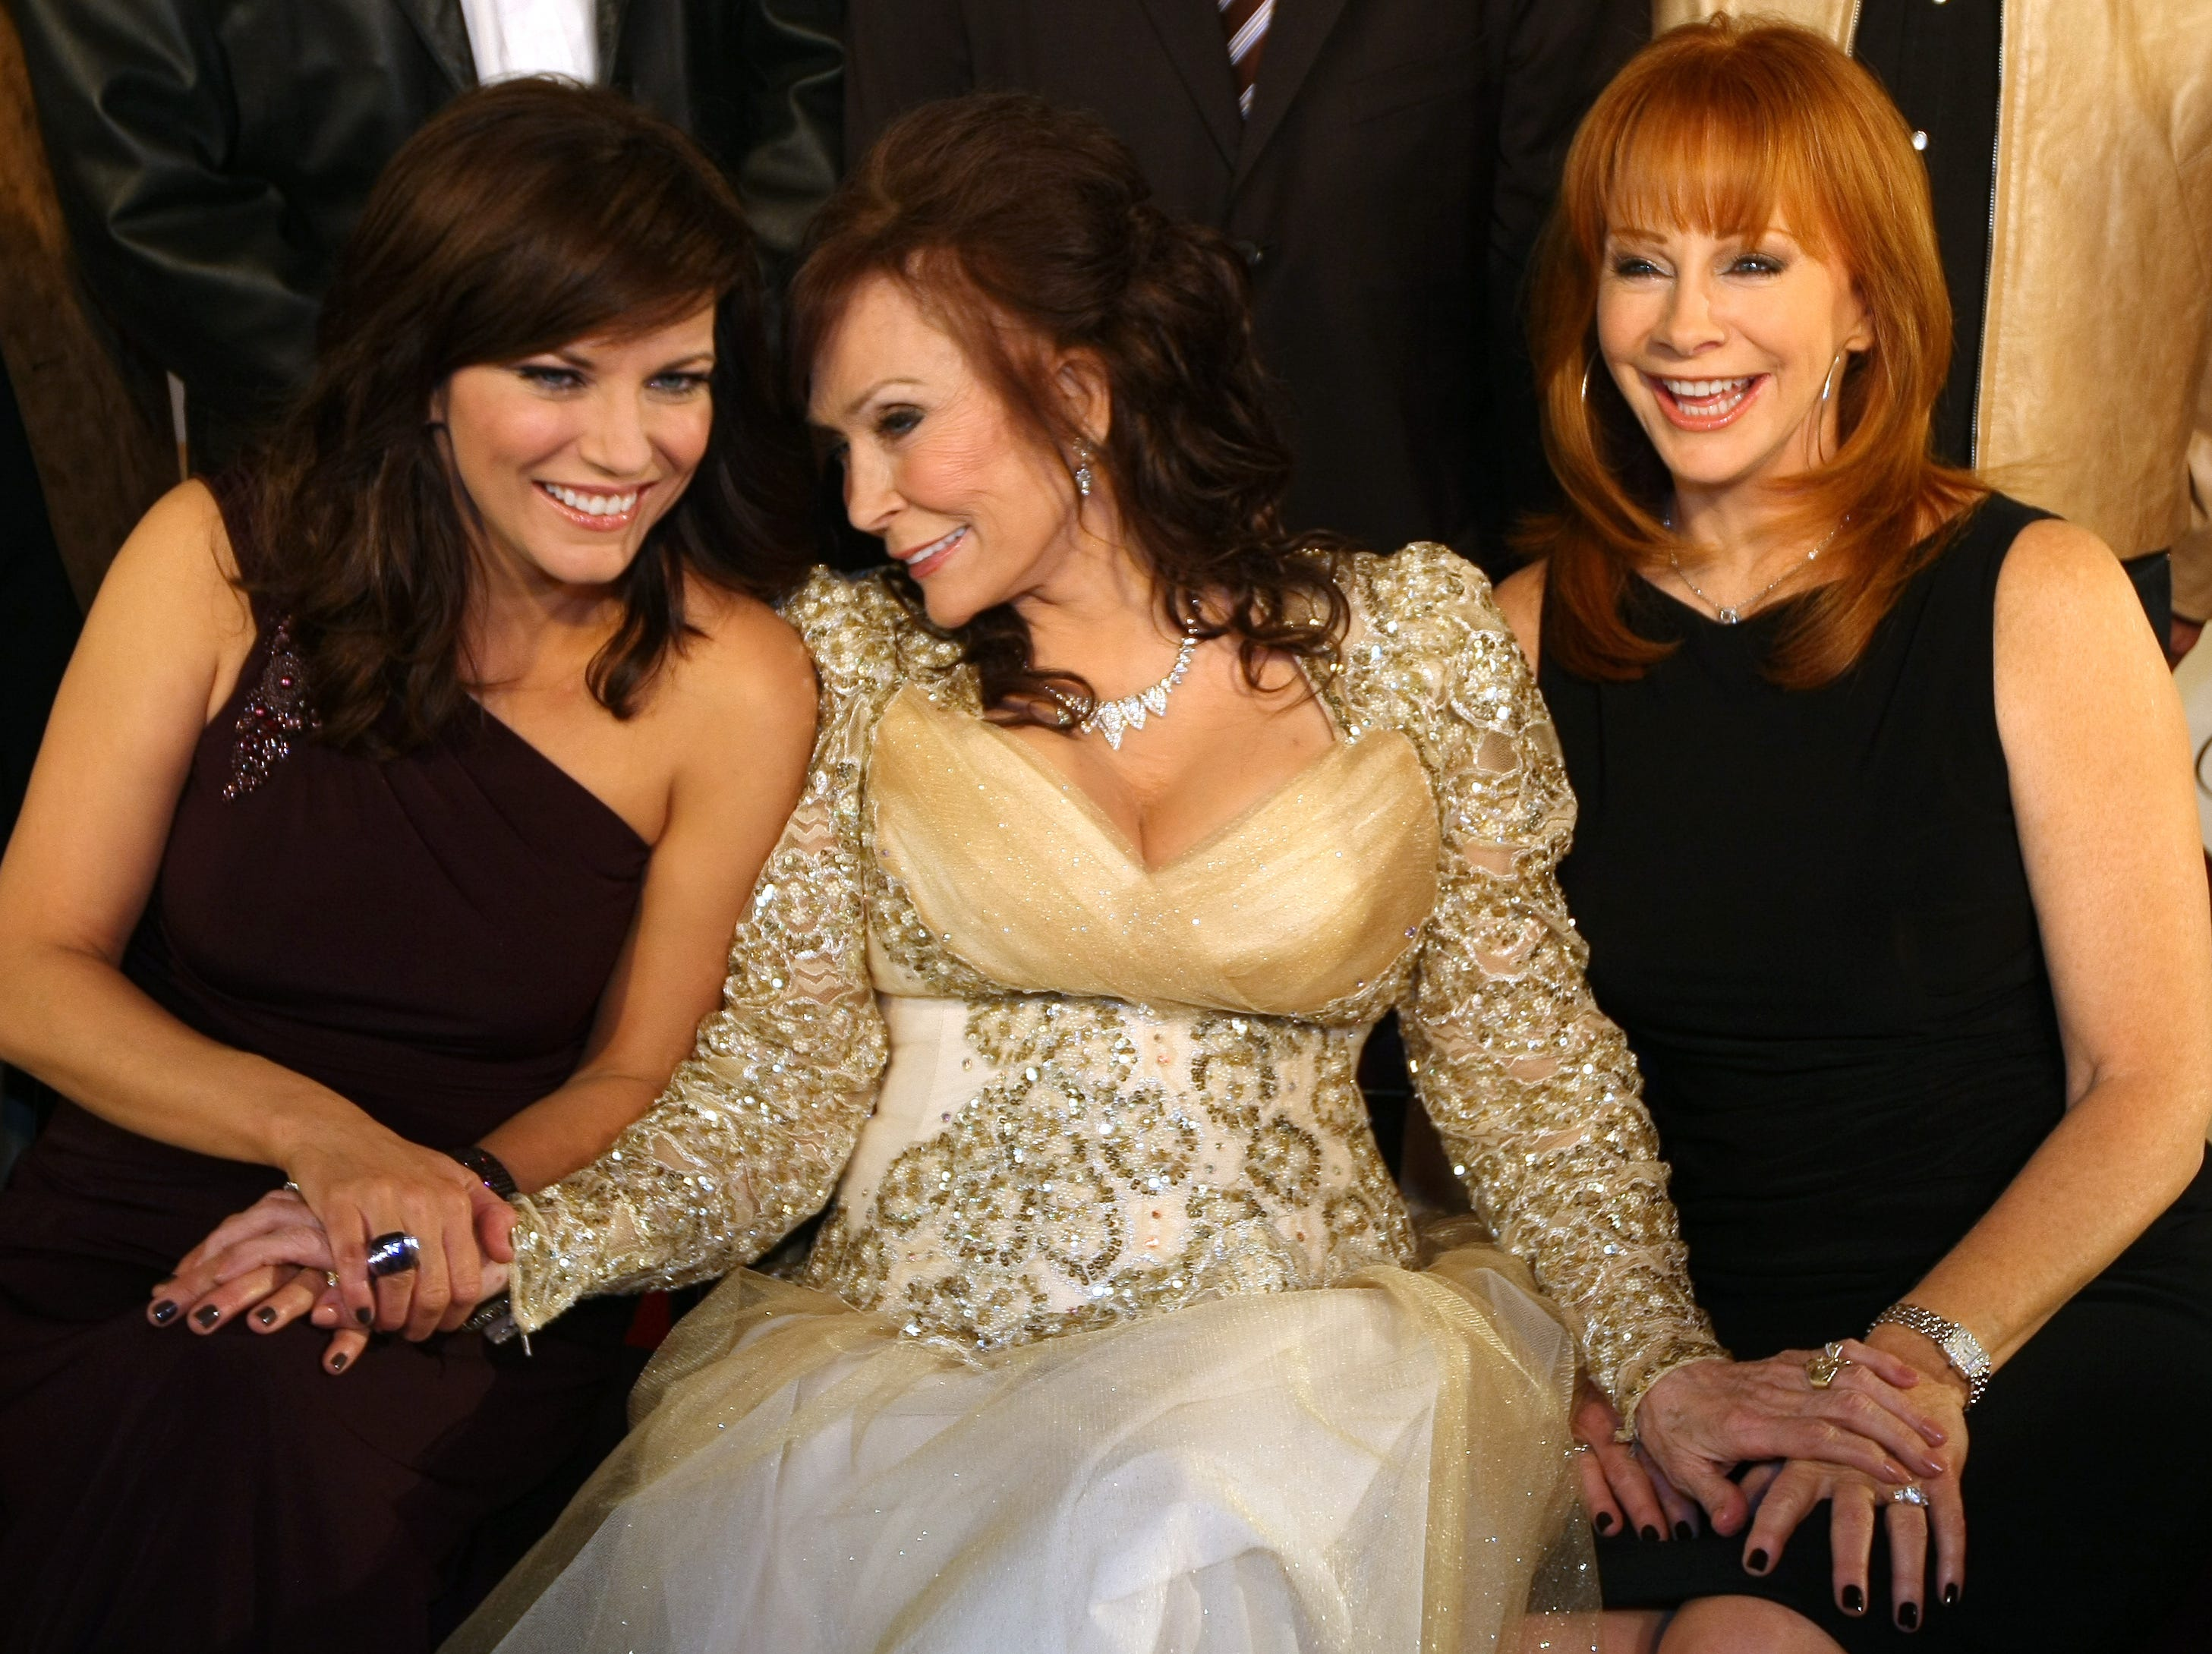 Recording artist Martina McBride, left, Loretta Lynn and Reba McEntire share a moment as they pose for a picture at the GRAMMY Salute To Country Music¨ honoring Lynn at the Ryman Auditorium Oct. 12, 2010 in Nashville.